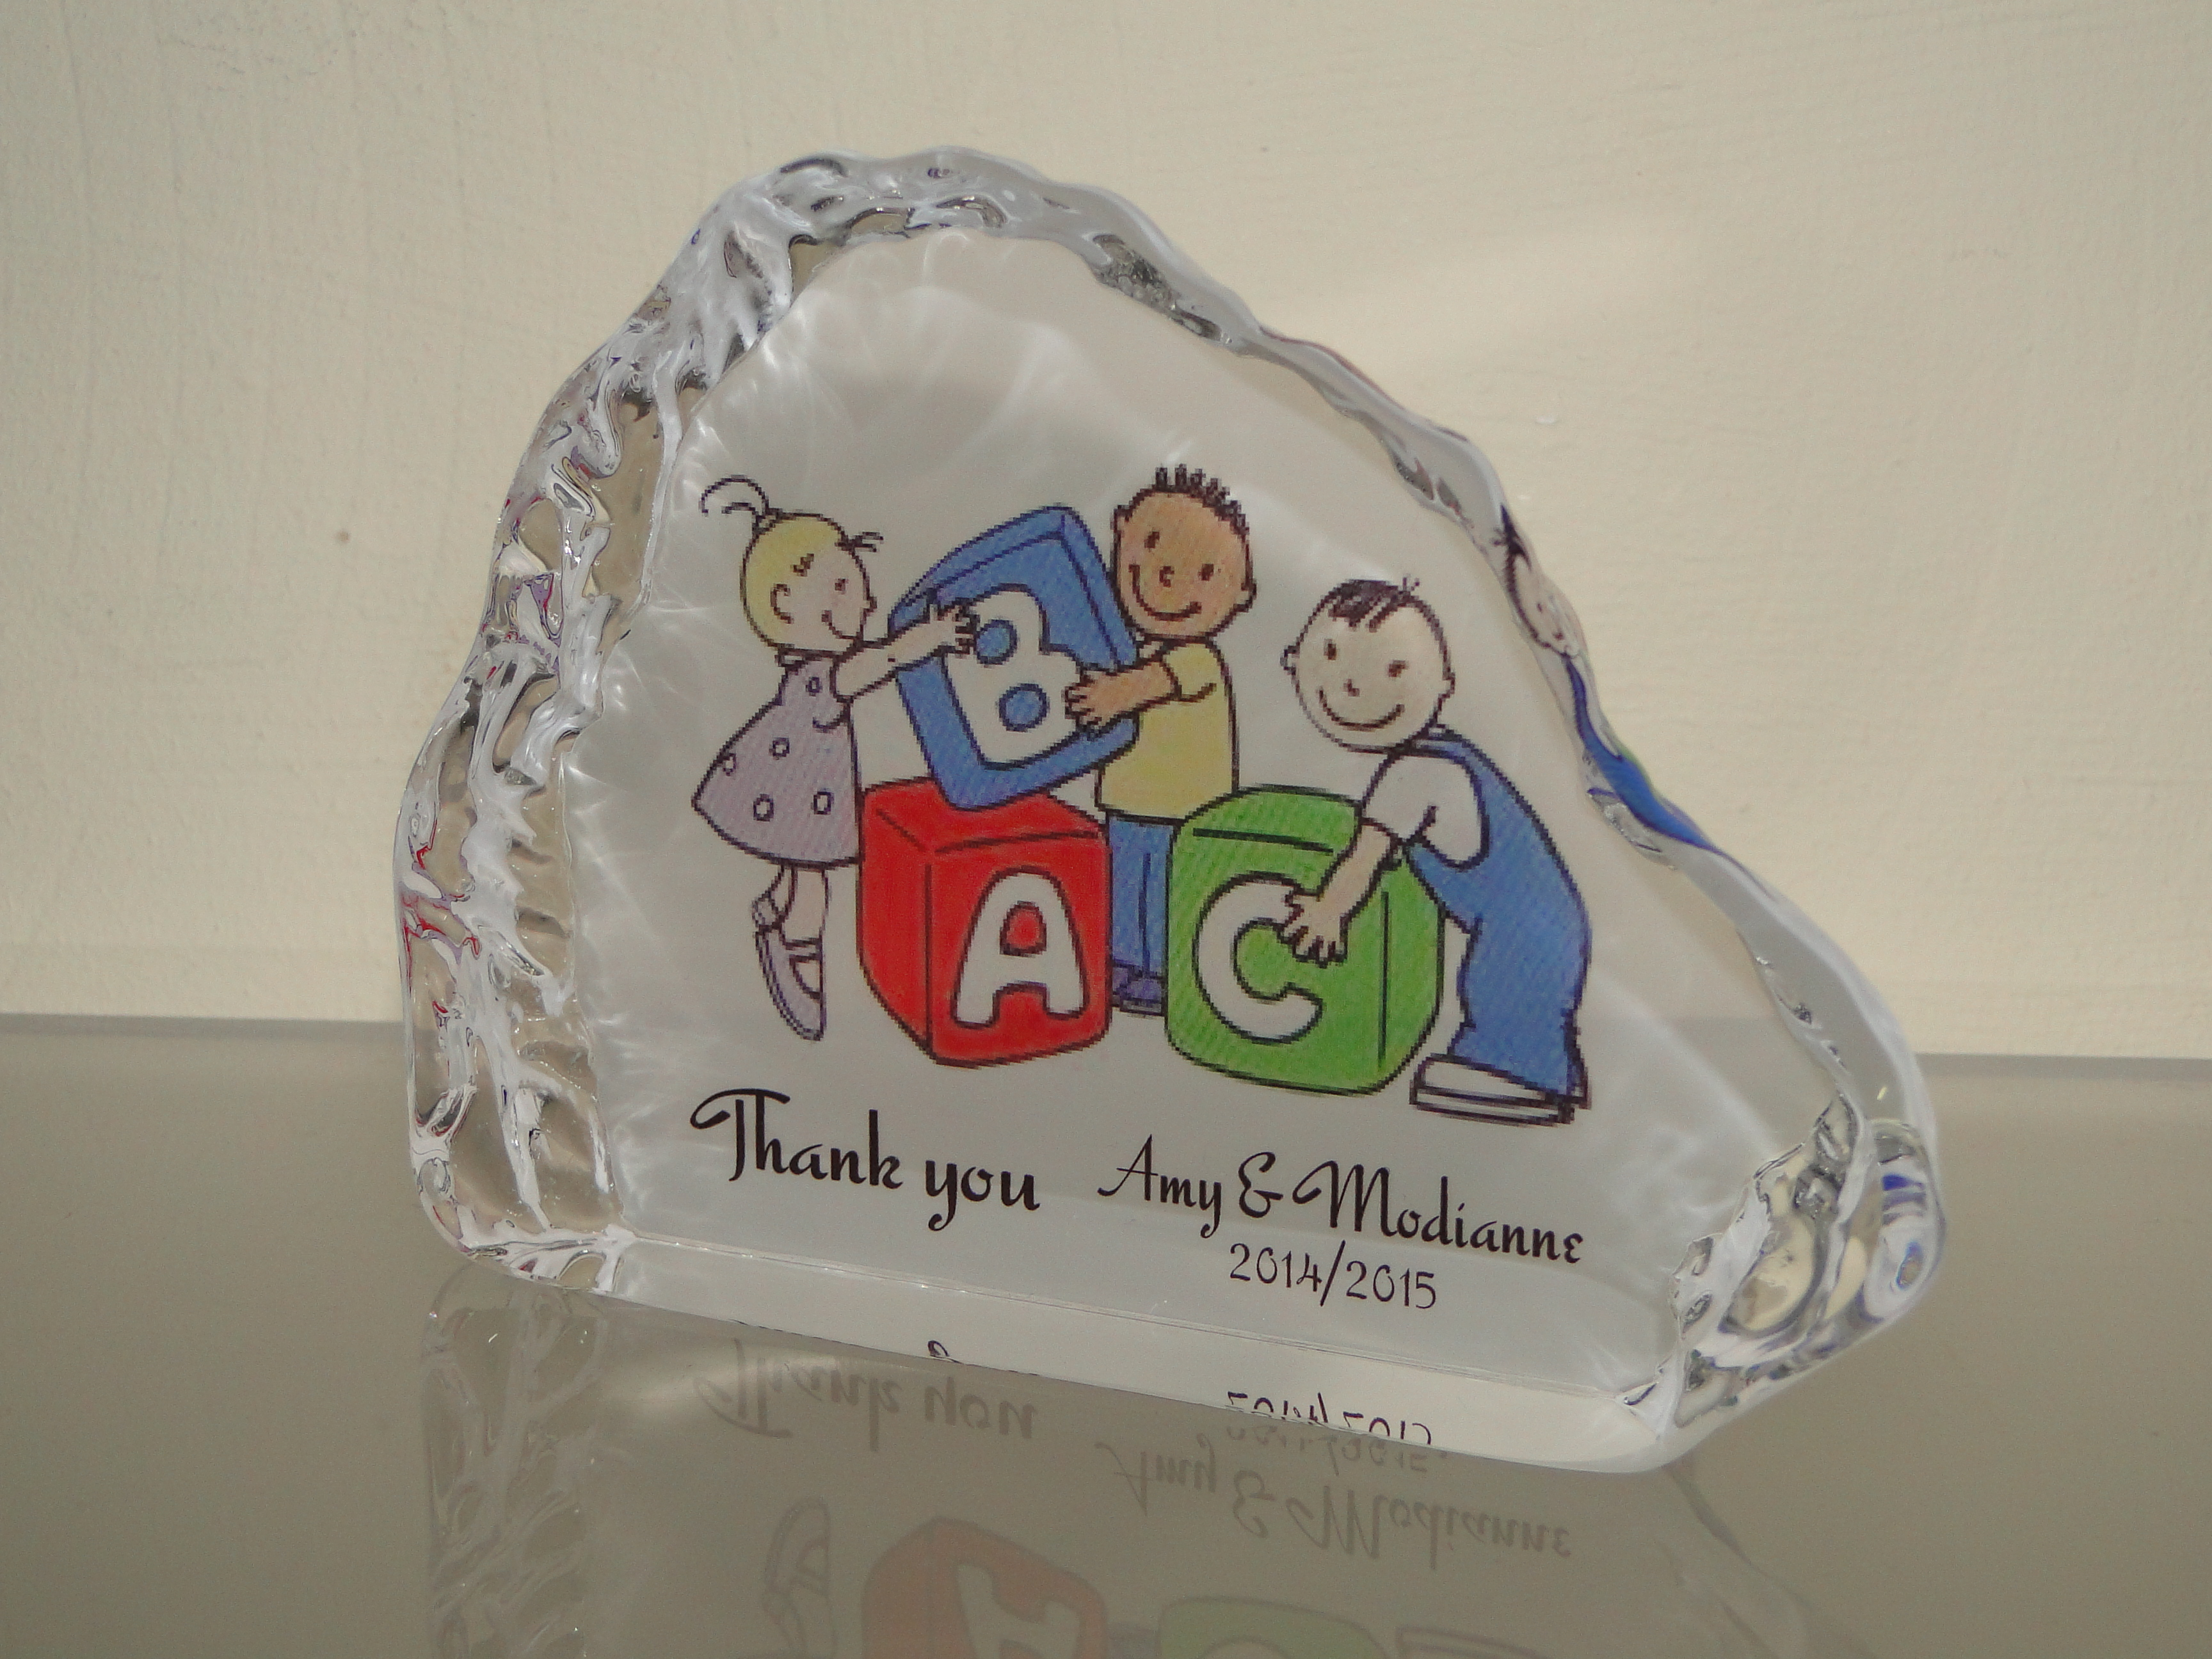 Personalized Gifts. Home u203a Personalized Gifts u203a Thank you gift for Teacher Personalized Crystal & Thank you gift for Teacher Personalized Crystal - Customize Nation